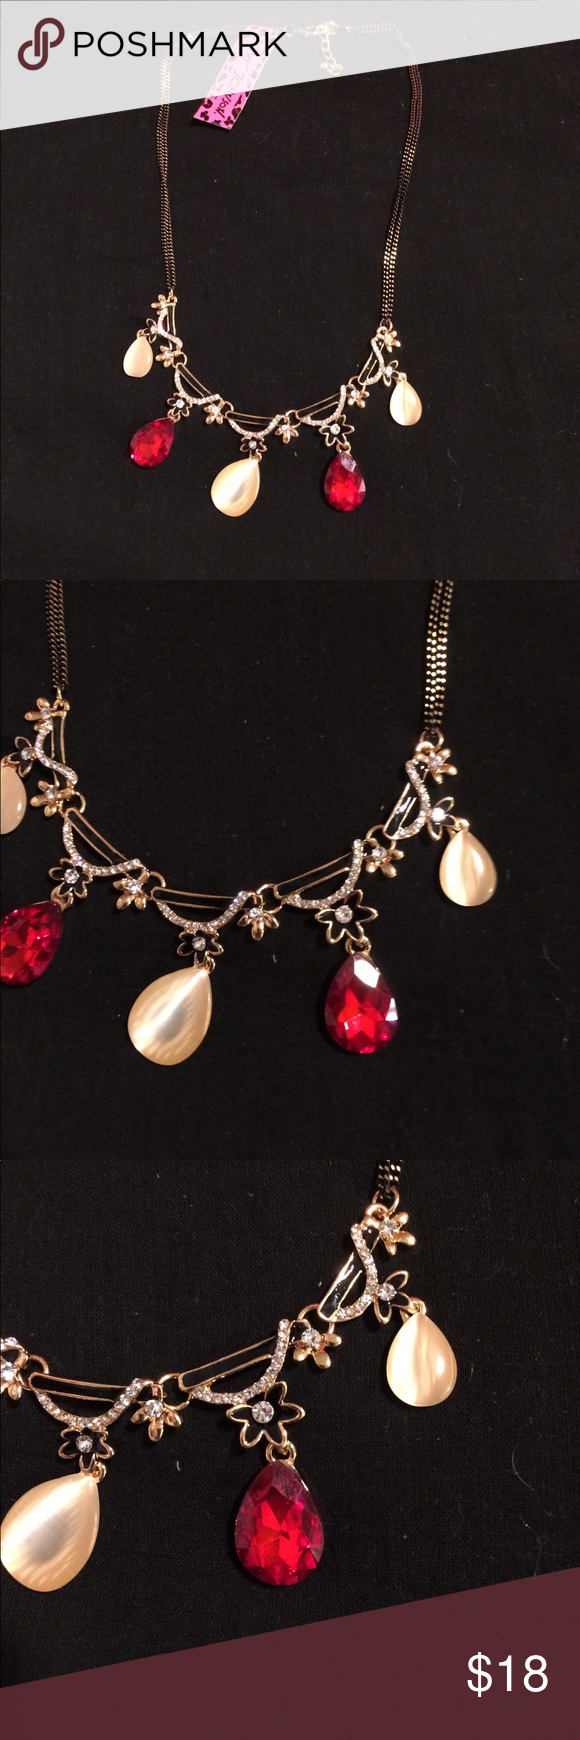 NWT Betsey Johnson necklace NWT Betsey Johnson Red and cream ...